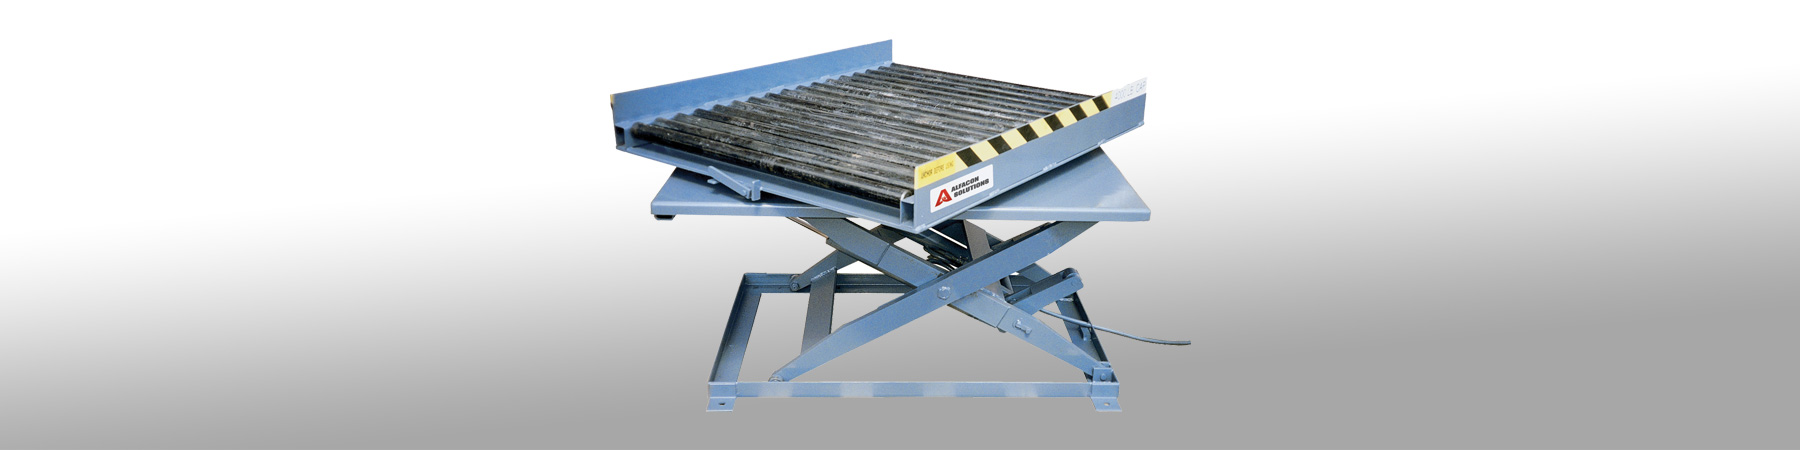 lpssl low profile scissor lift